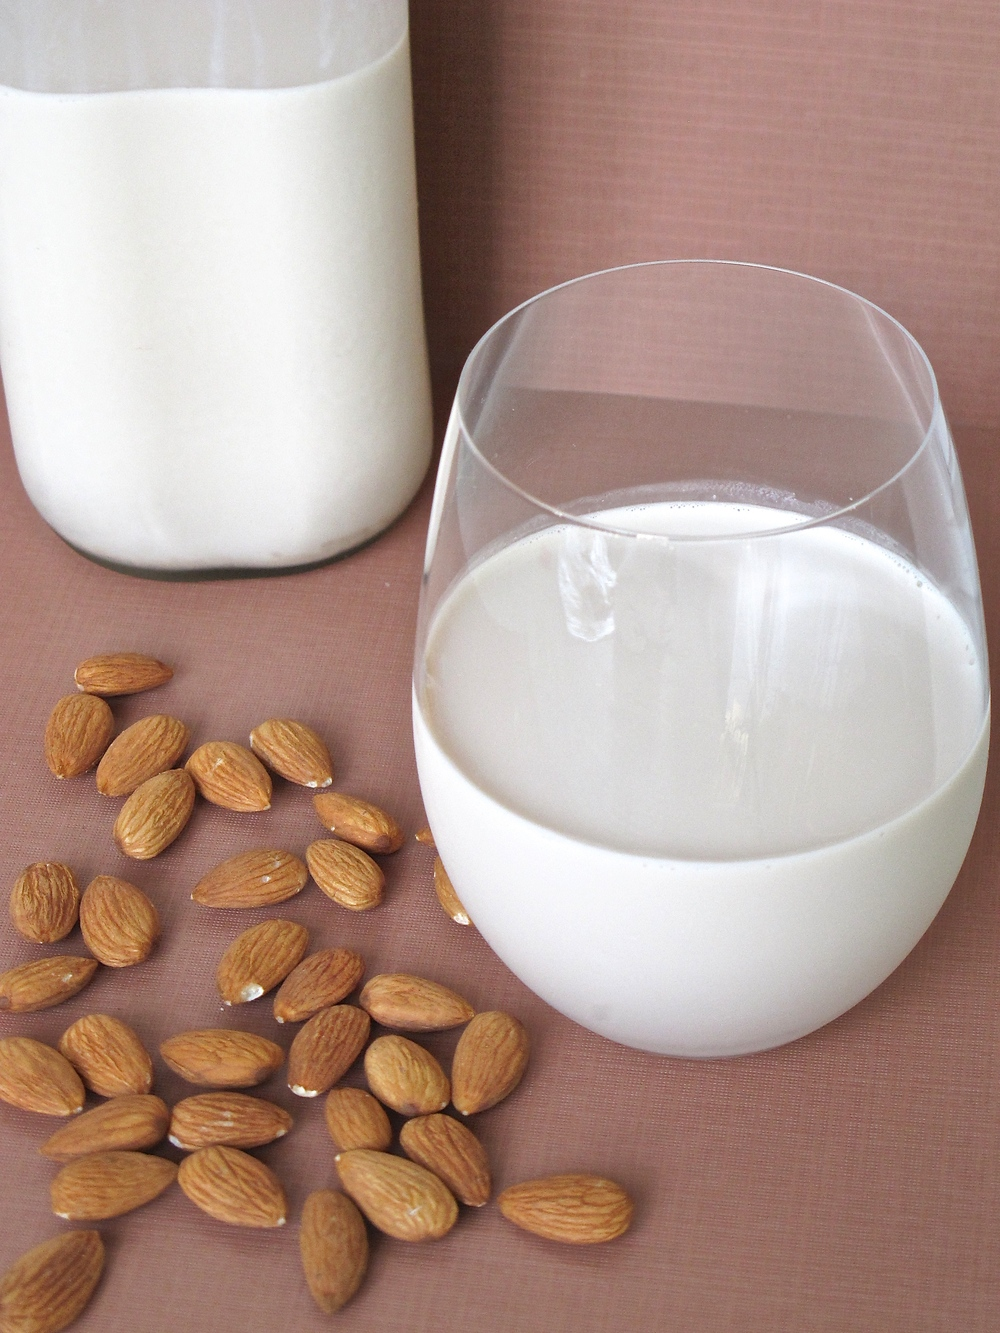 how to make protein drink have long shelf life